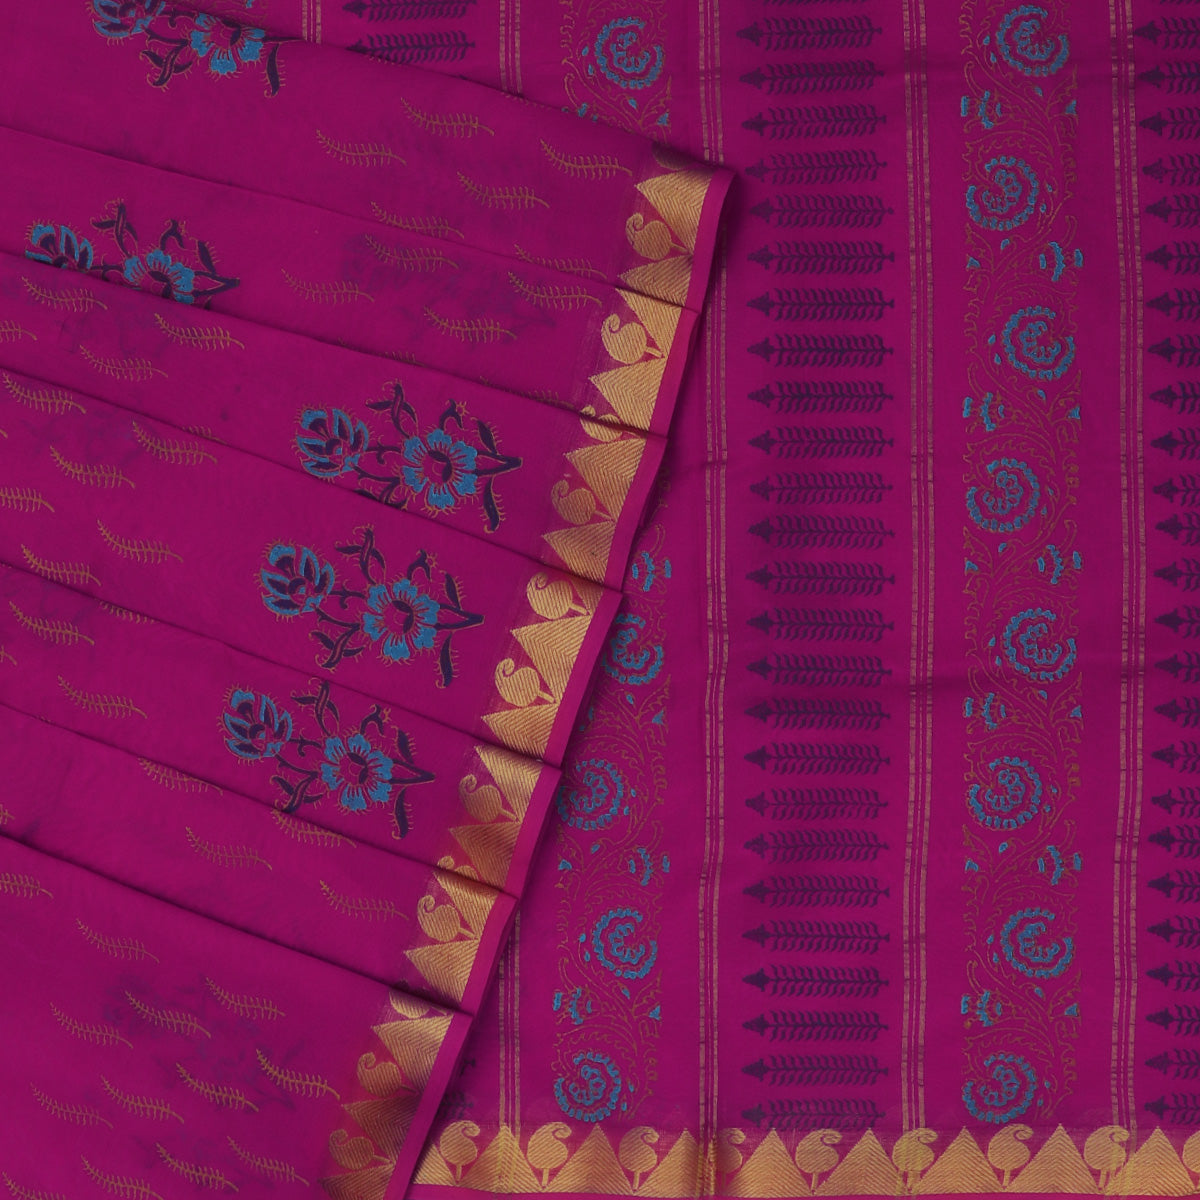 Printed Silk Cotton Saree Pink with Temple Zari border